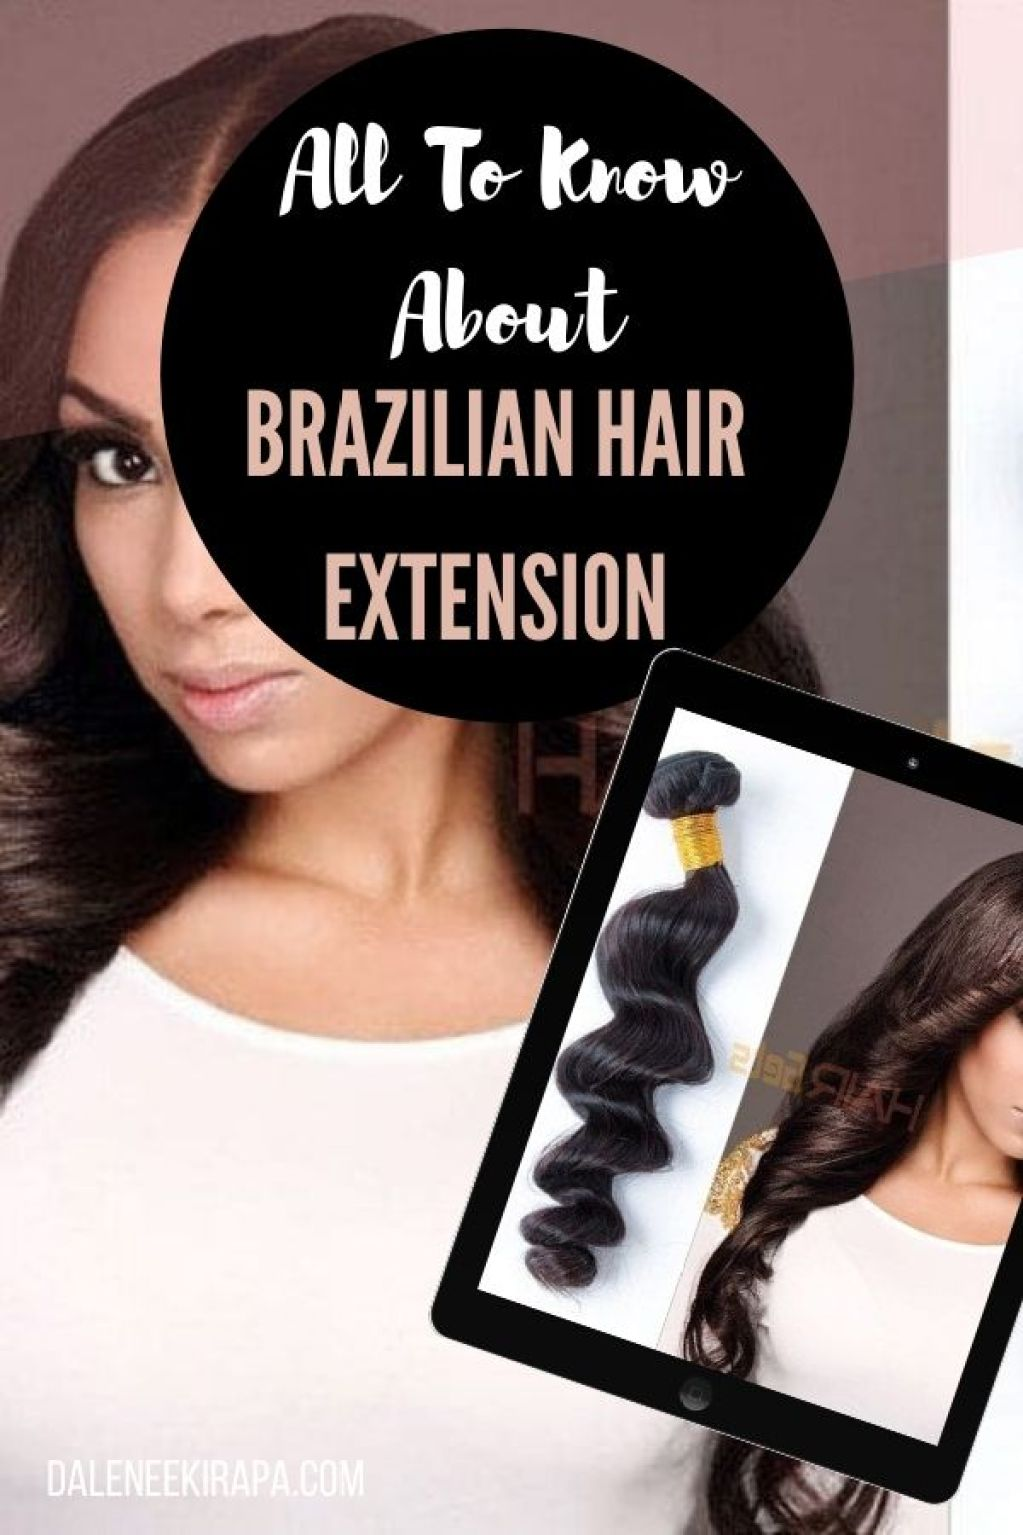 Why Do Women Love Brazilian Hair? Read This Before Your Buy